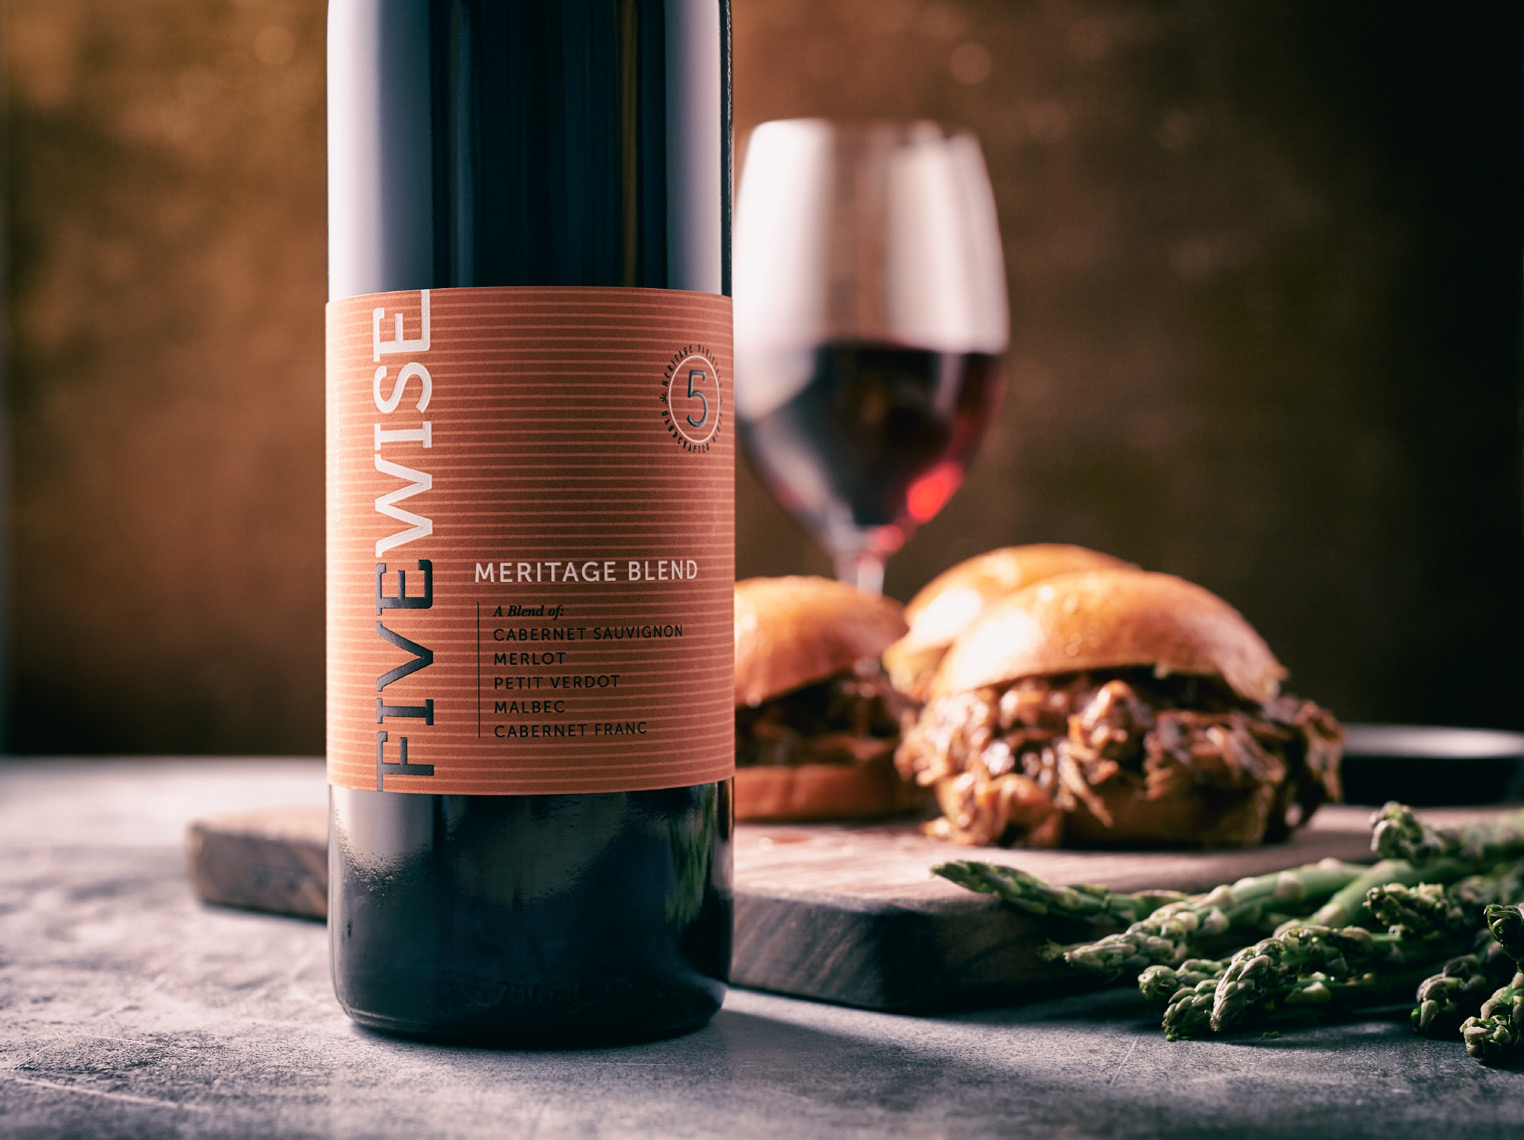 bottle and glass of wine with asparagus and sloppy joe burgers